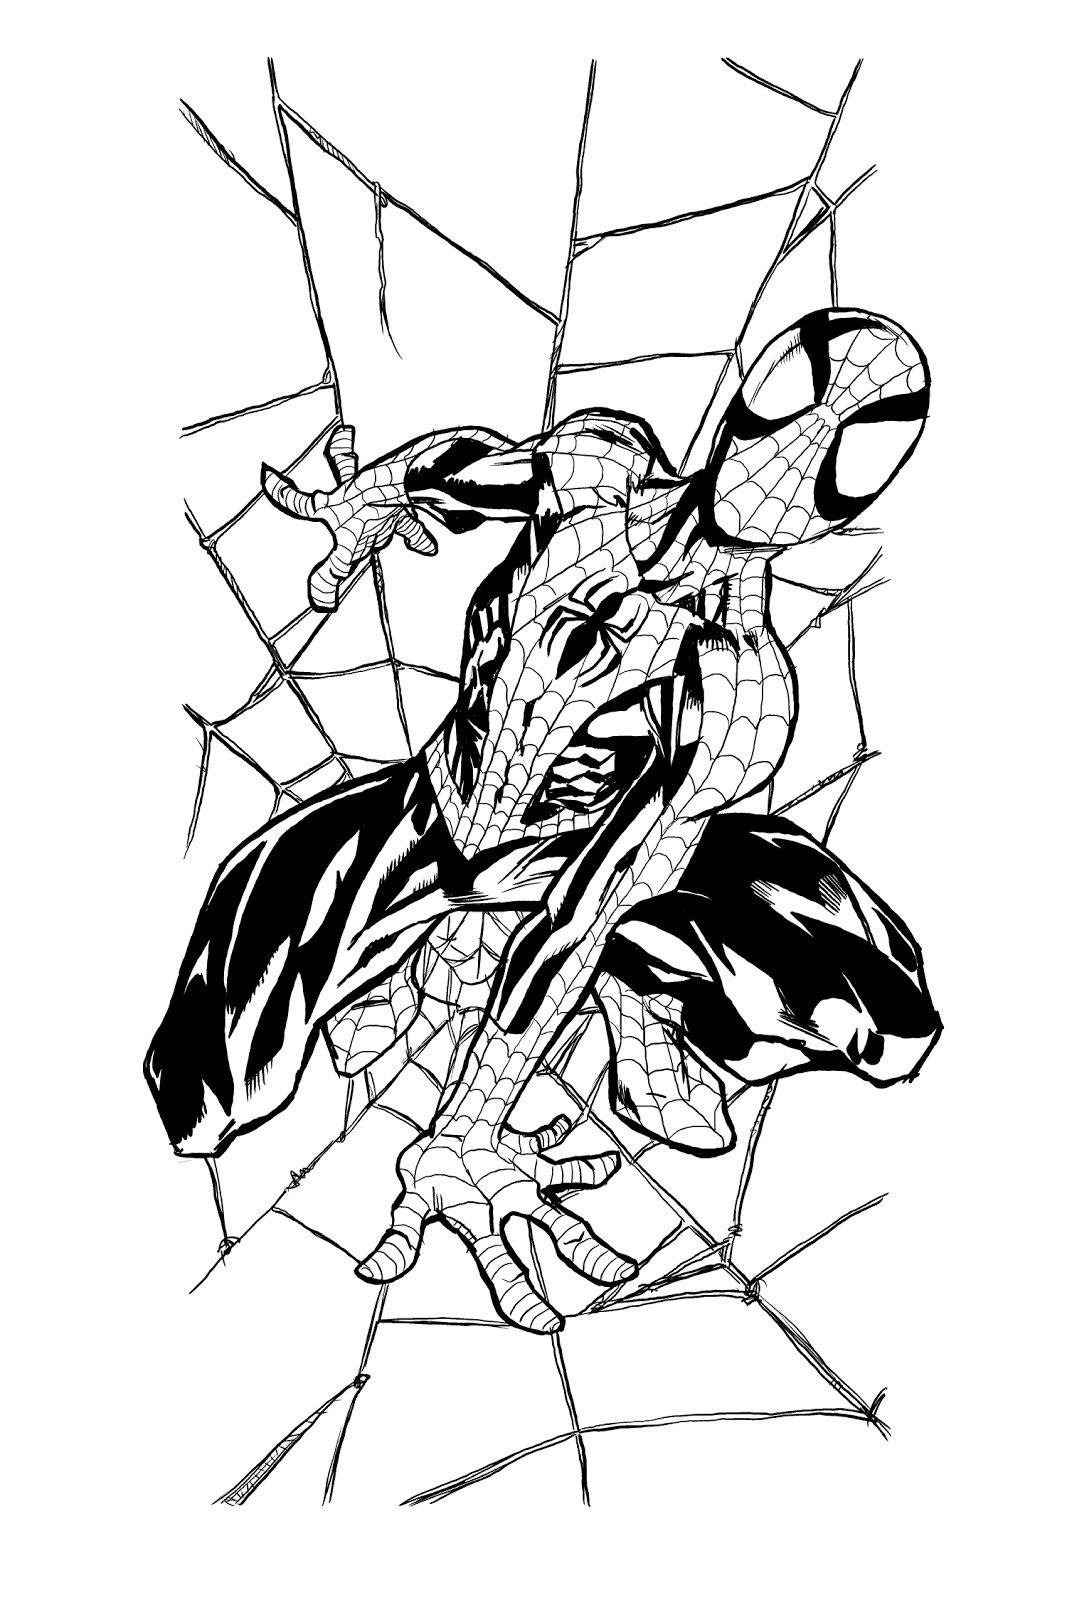 Spiderman Vs Venom Coloring Pages Ultimate Spiderman Coloring